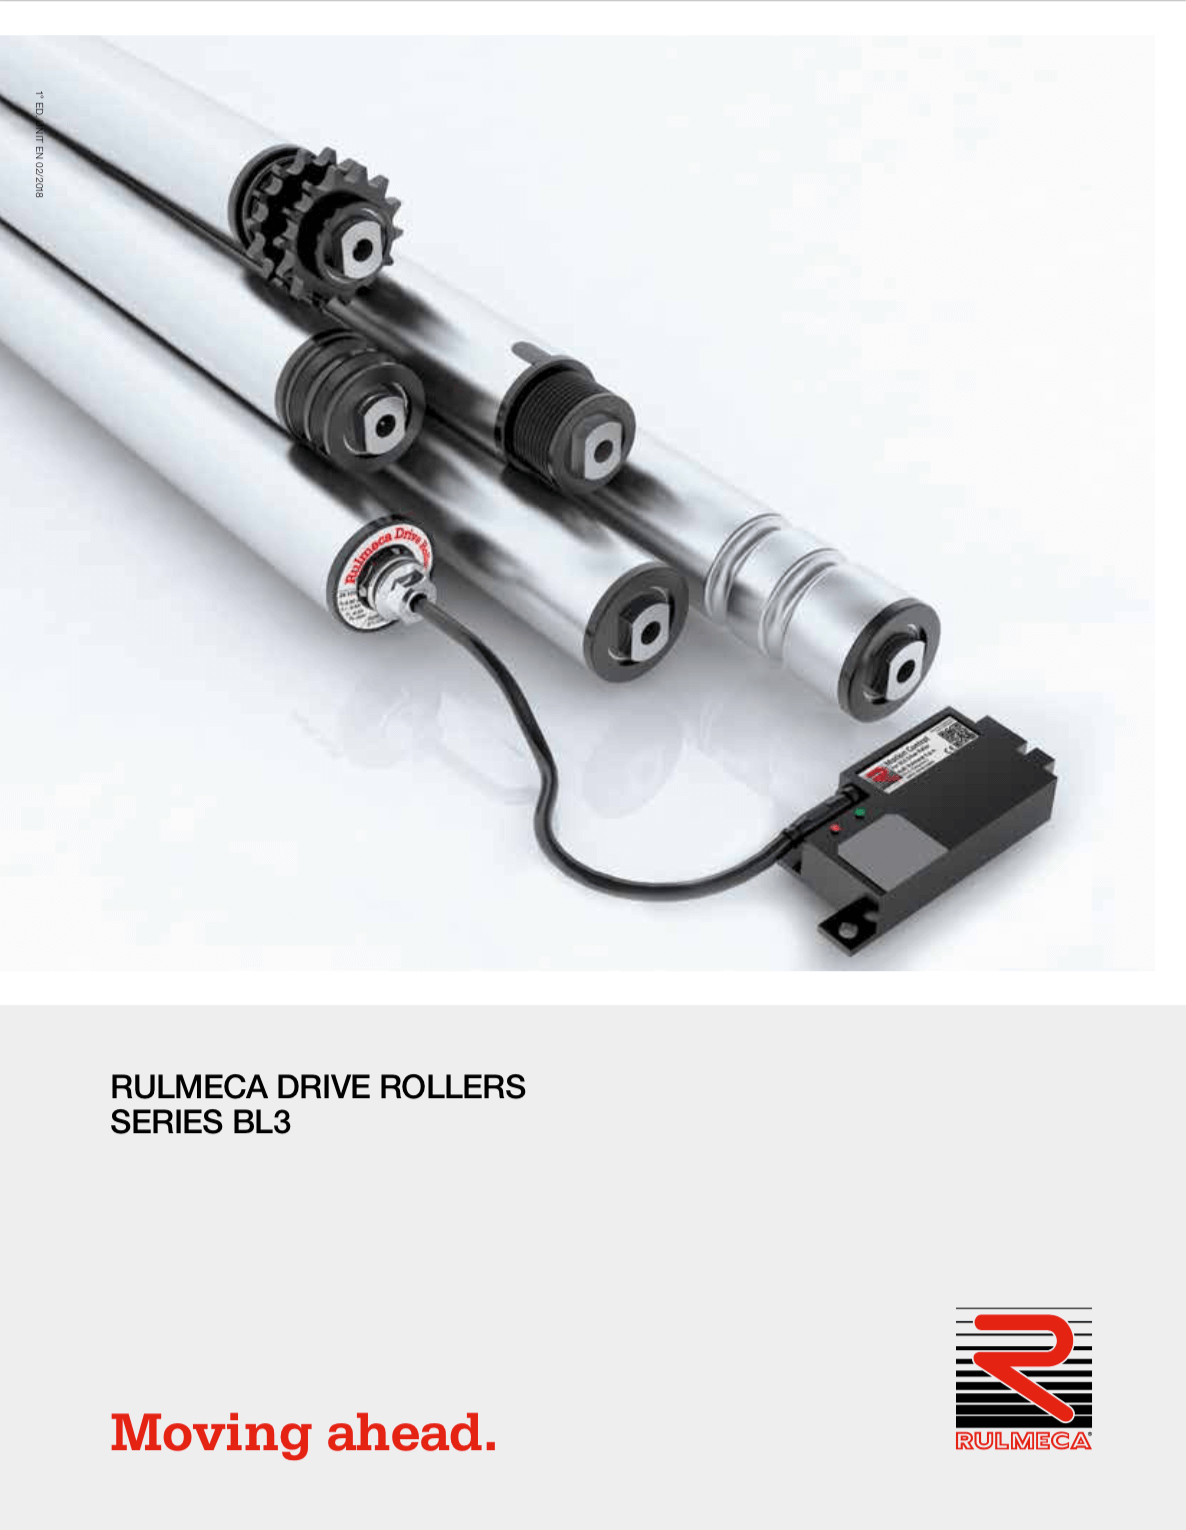 Drive roller catalogue